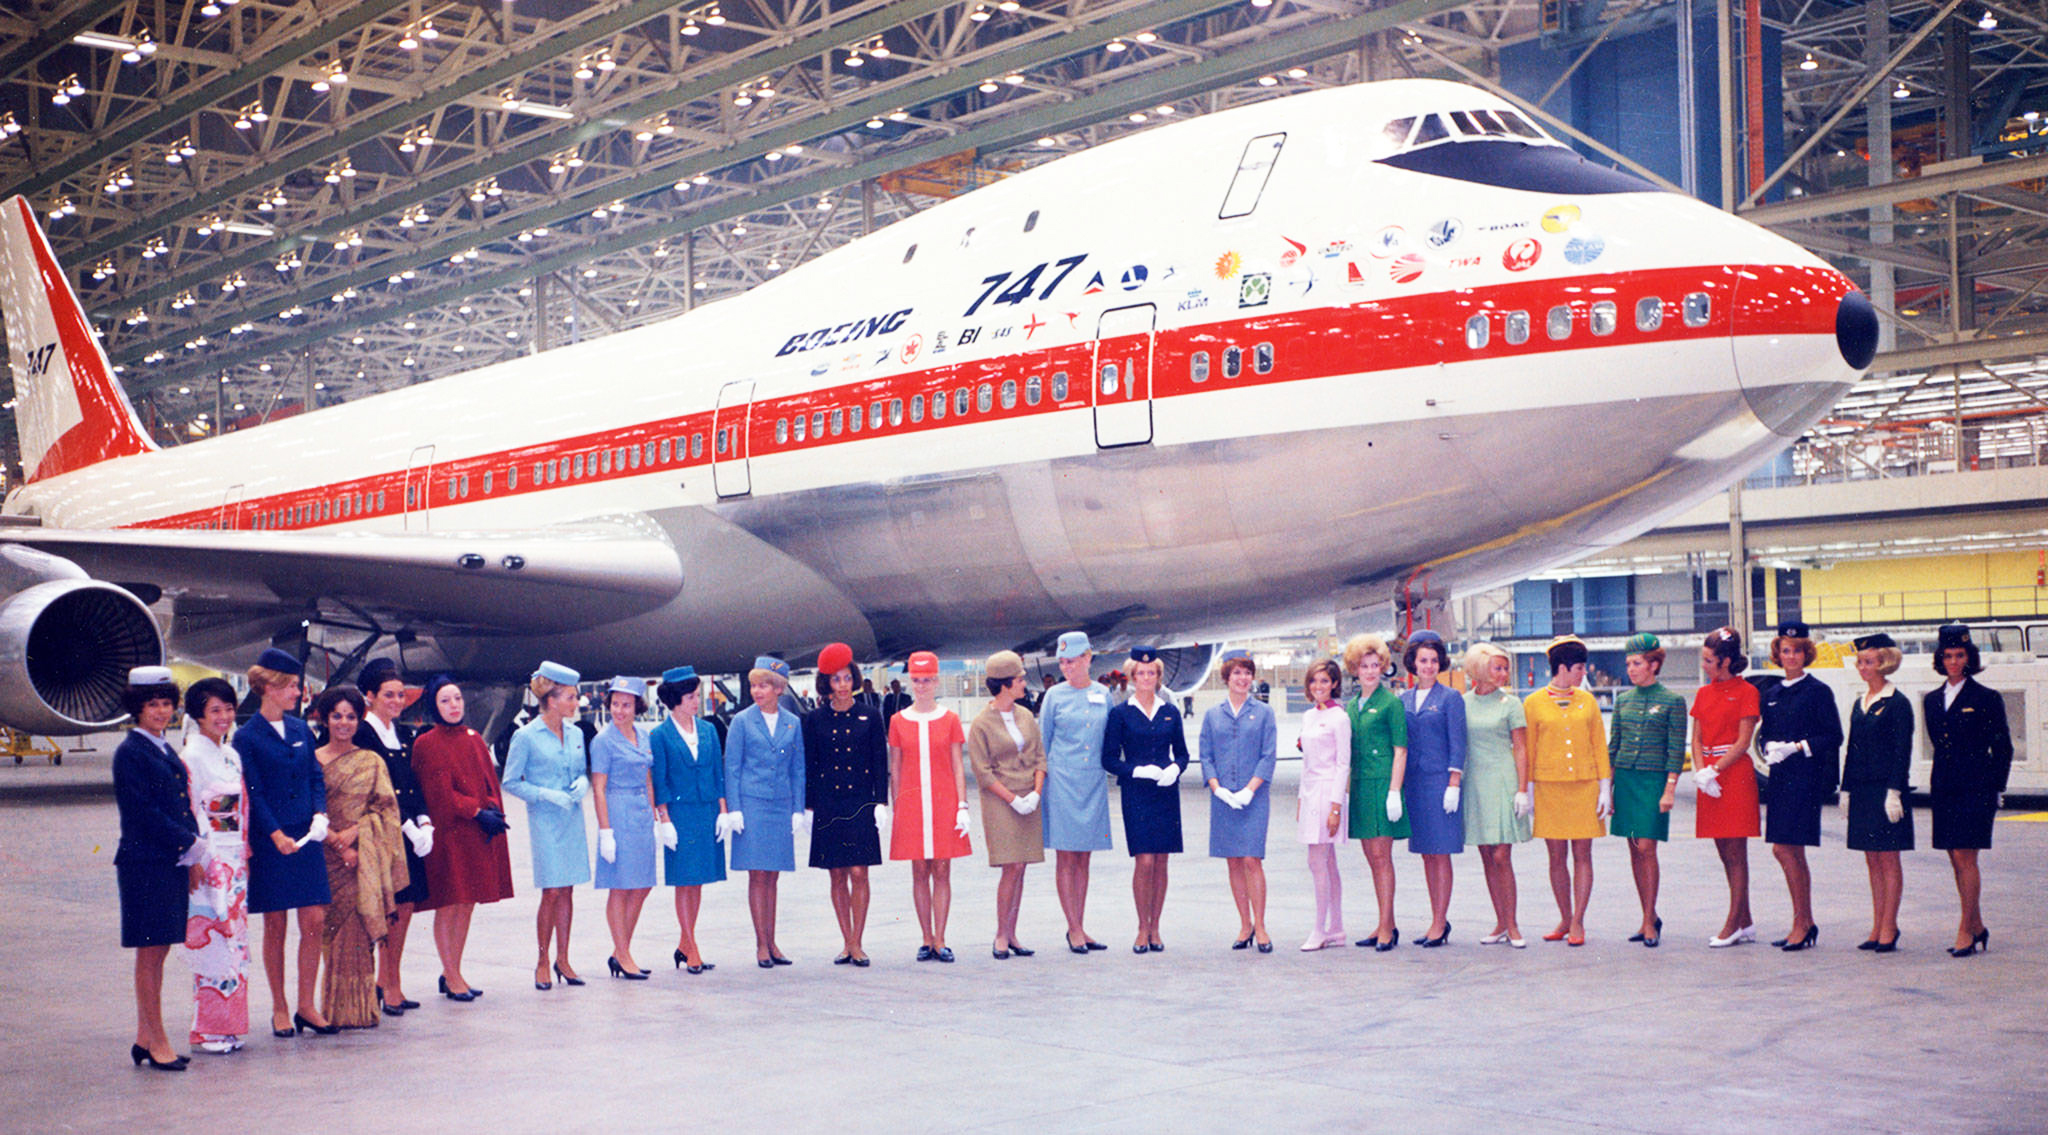 Boeing rolls out first 747 Jumbo Jet on September 30, 1968